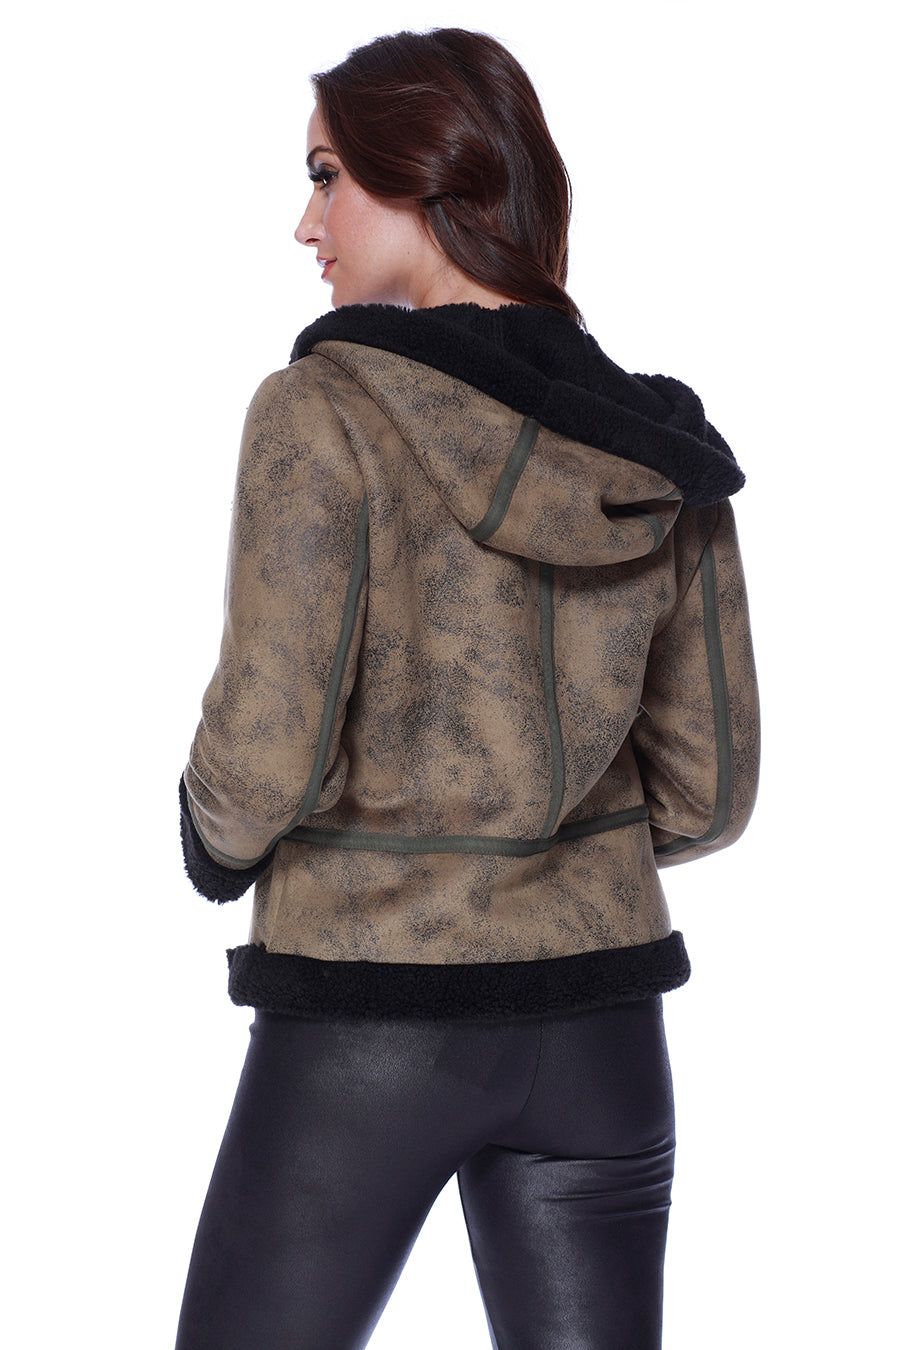 Microfiber Leather Jacket W/ Hood